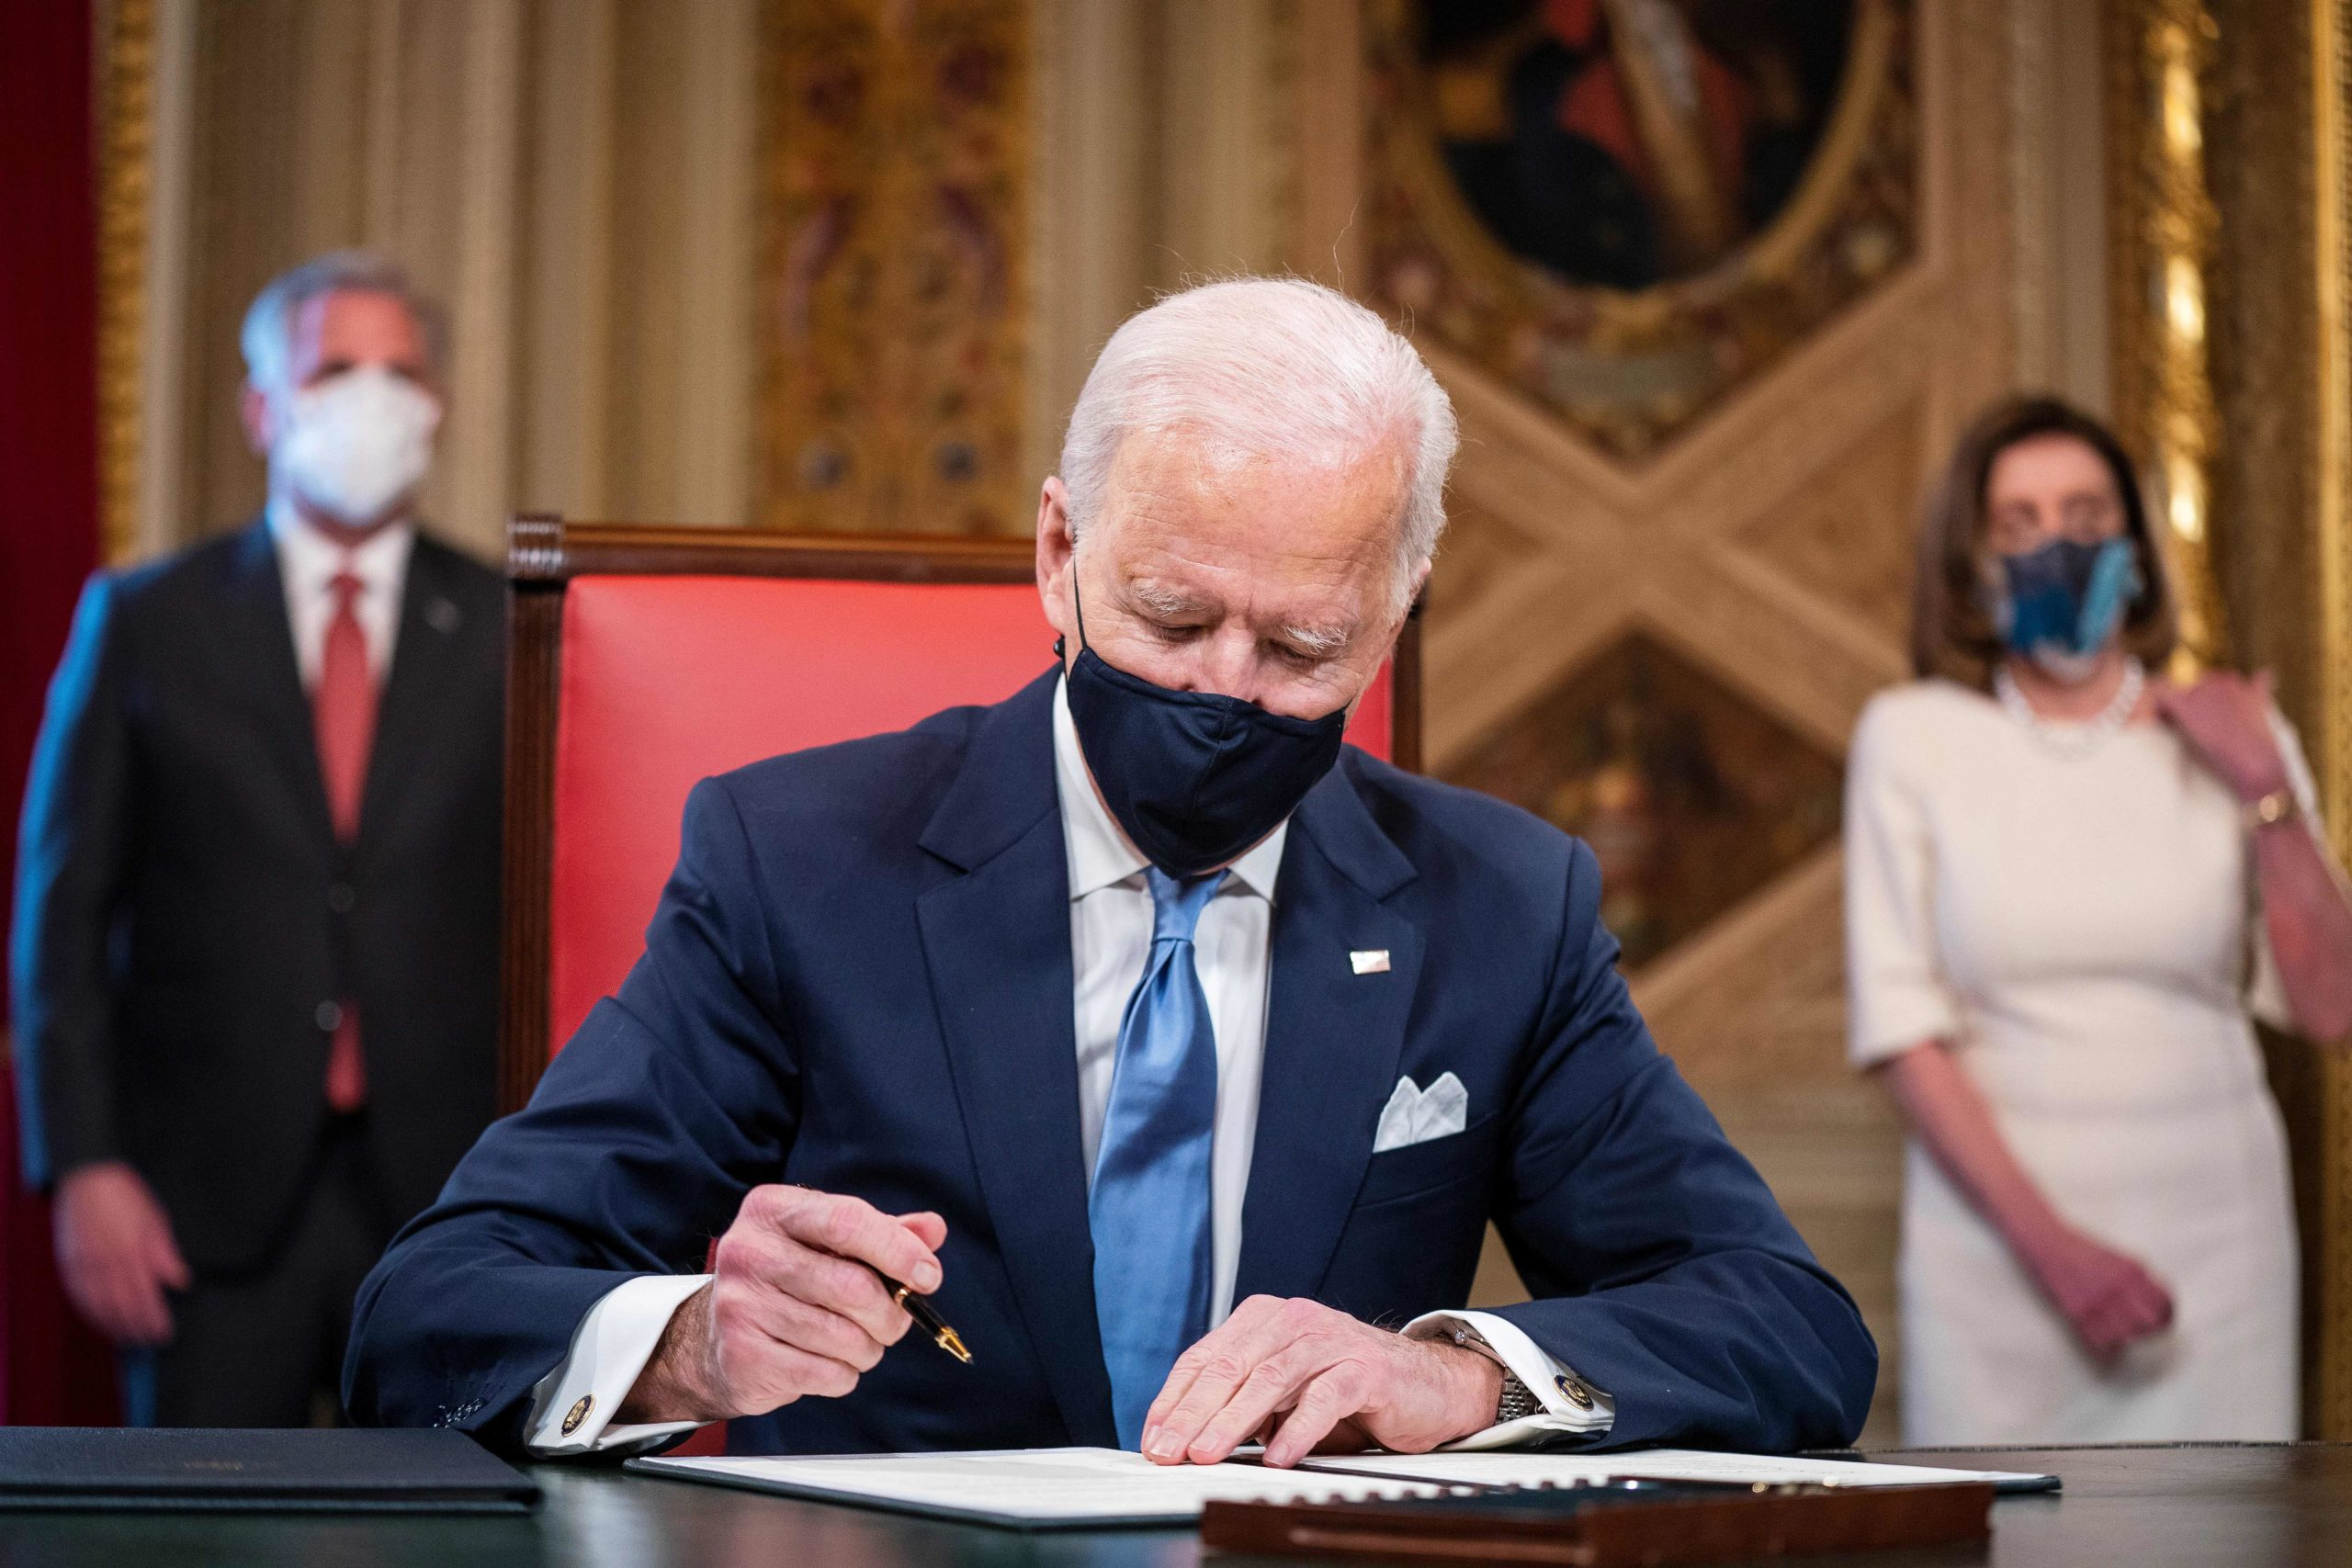 US President Joe Biden signs three documents including an Inauguration declaration, cabinet nominations and sub-cabinet noinations in the Presidents Room at the US Capitol after being sworn-in as the 46th president of the United States on January 20, 2021. (Photo by JIM LO SCALZO / POOL / AFP) (Photo by JIM LO SCALZO/POOL/AFP via Getty Images)